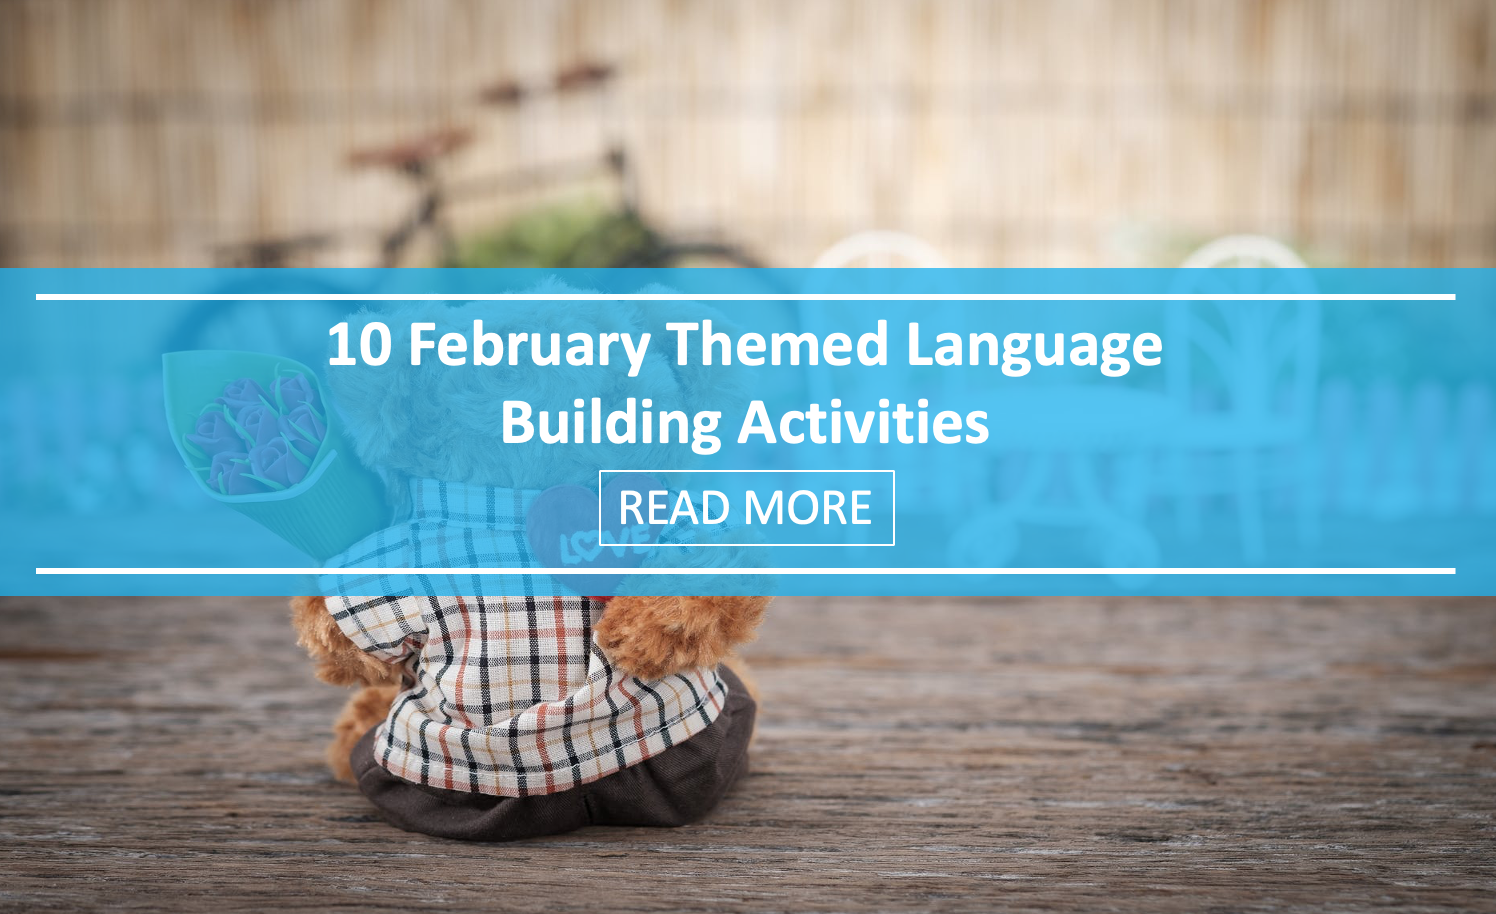 10 February Themed Language Building Activities